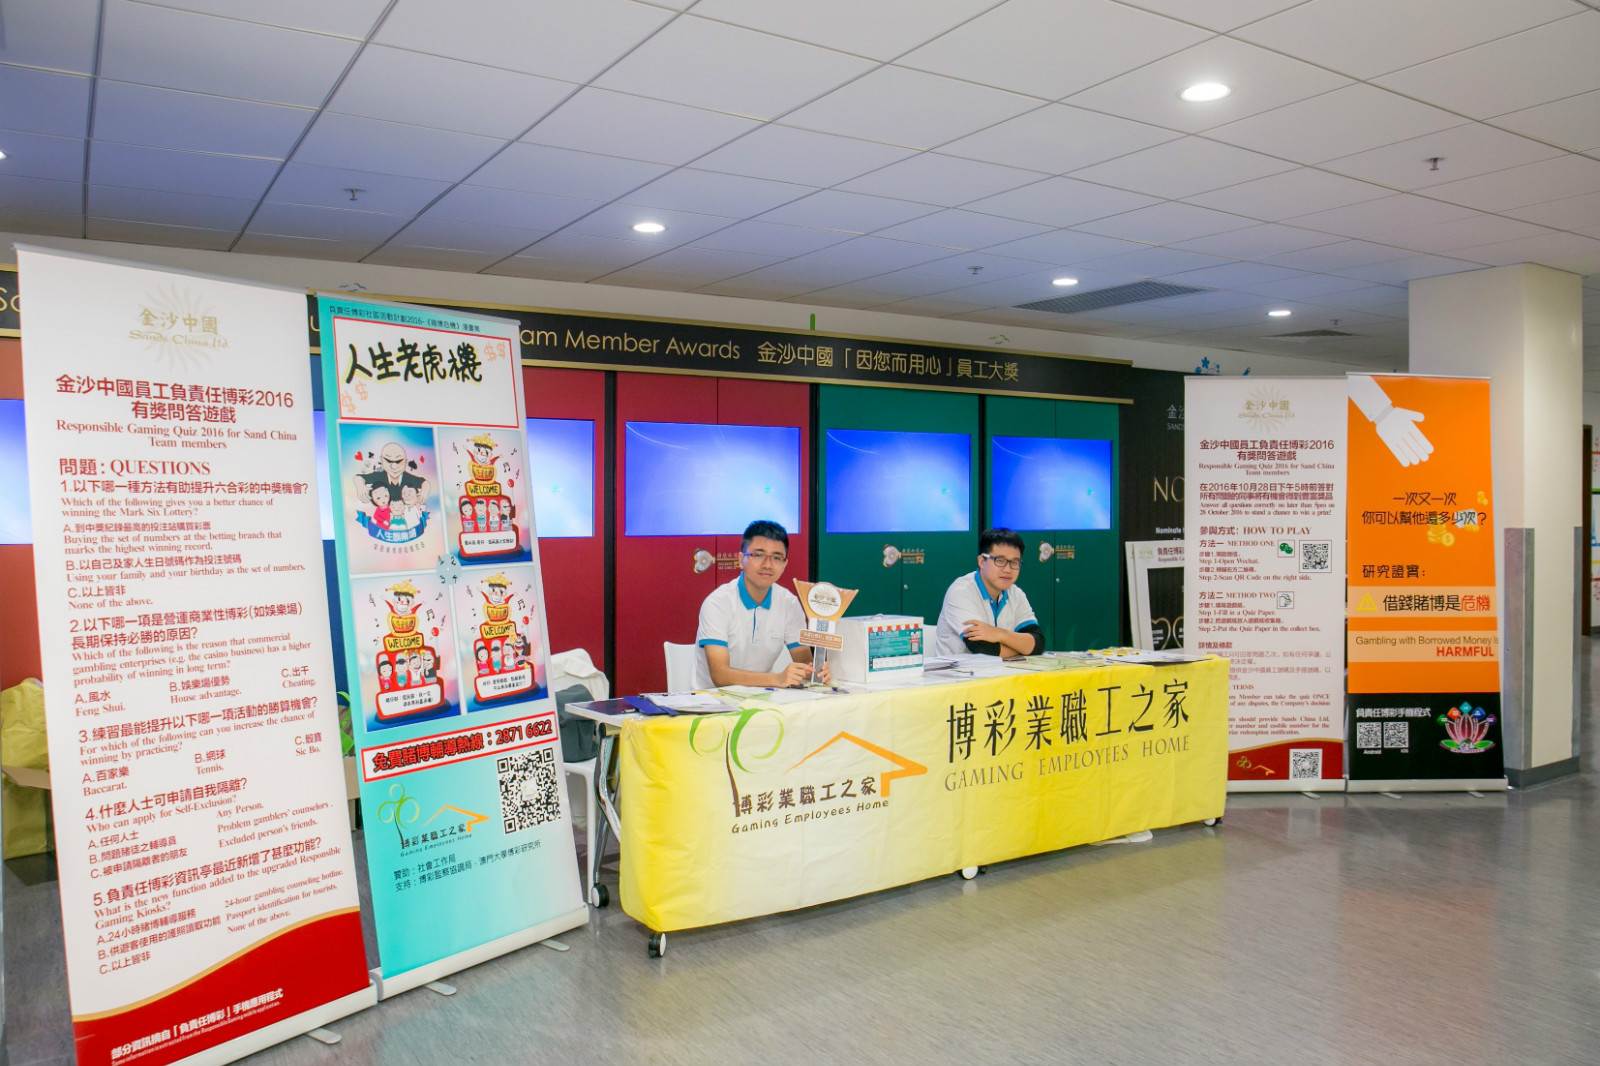 Sands China Participates in Responsible Gaming 2016